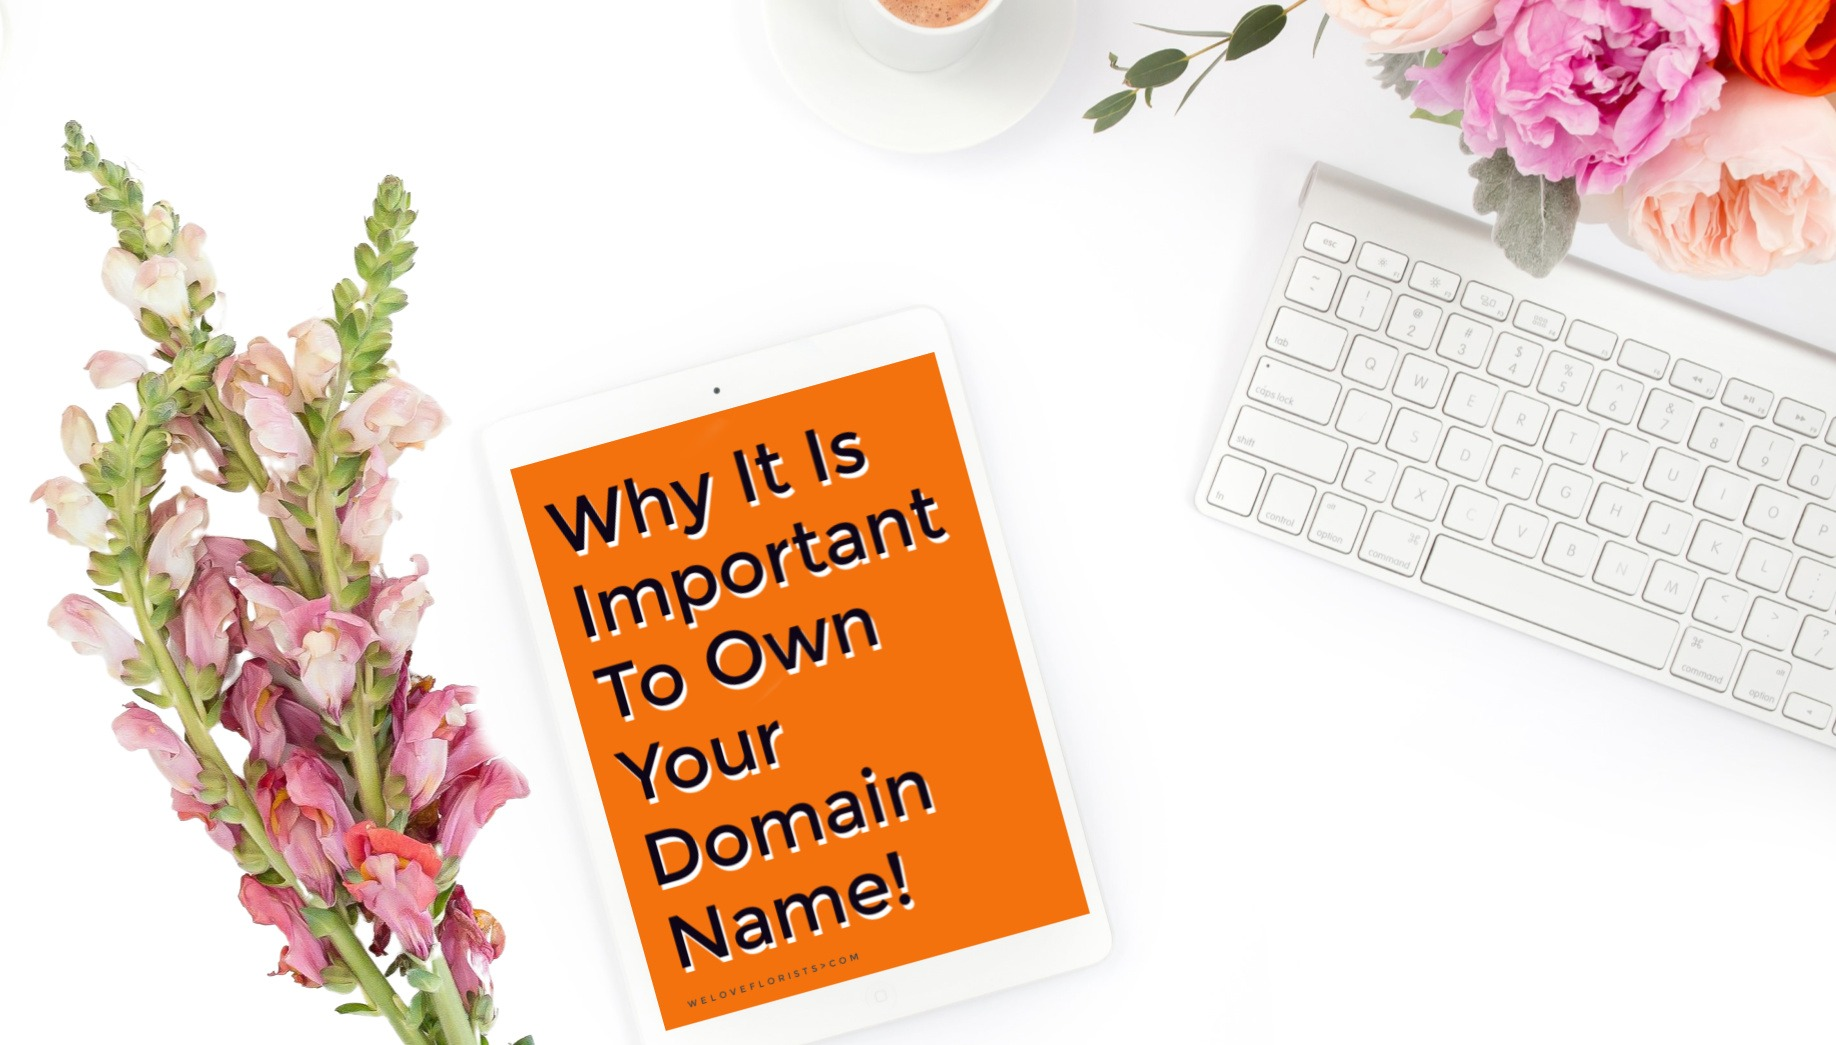 FLORISTS WHY YOU SHOULD OWN YOUR OWN DOMAIN NAME